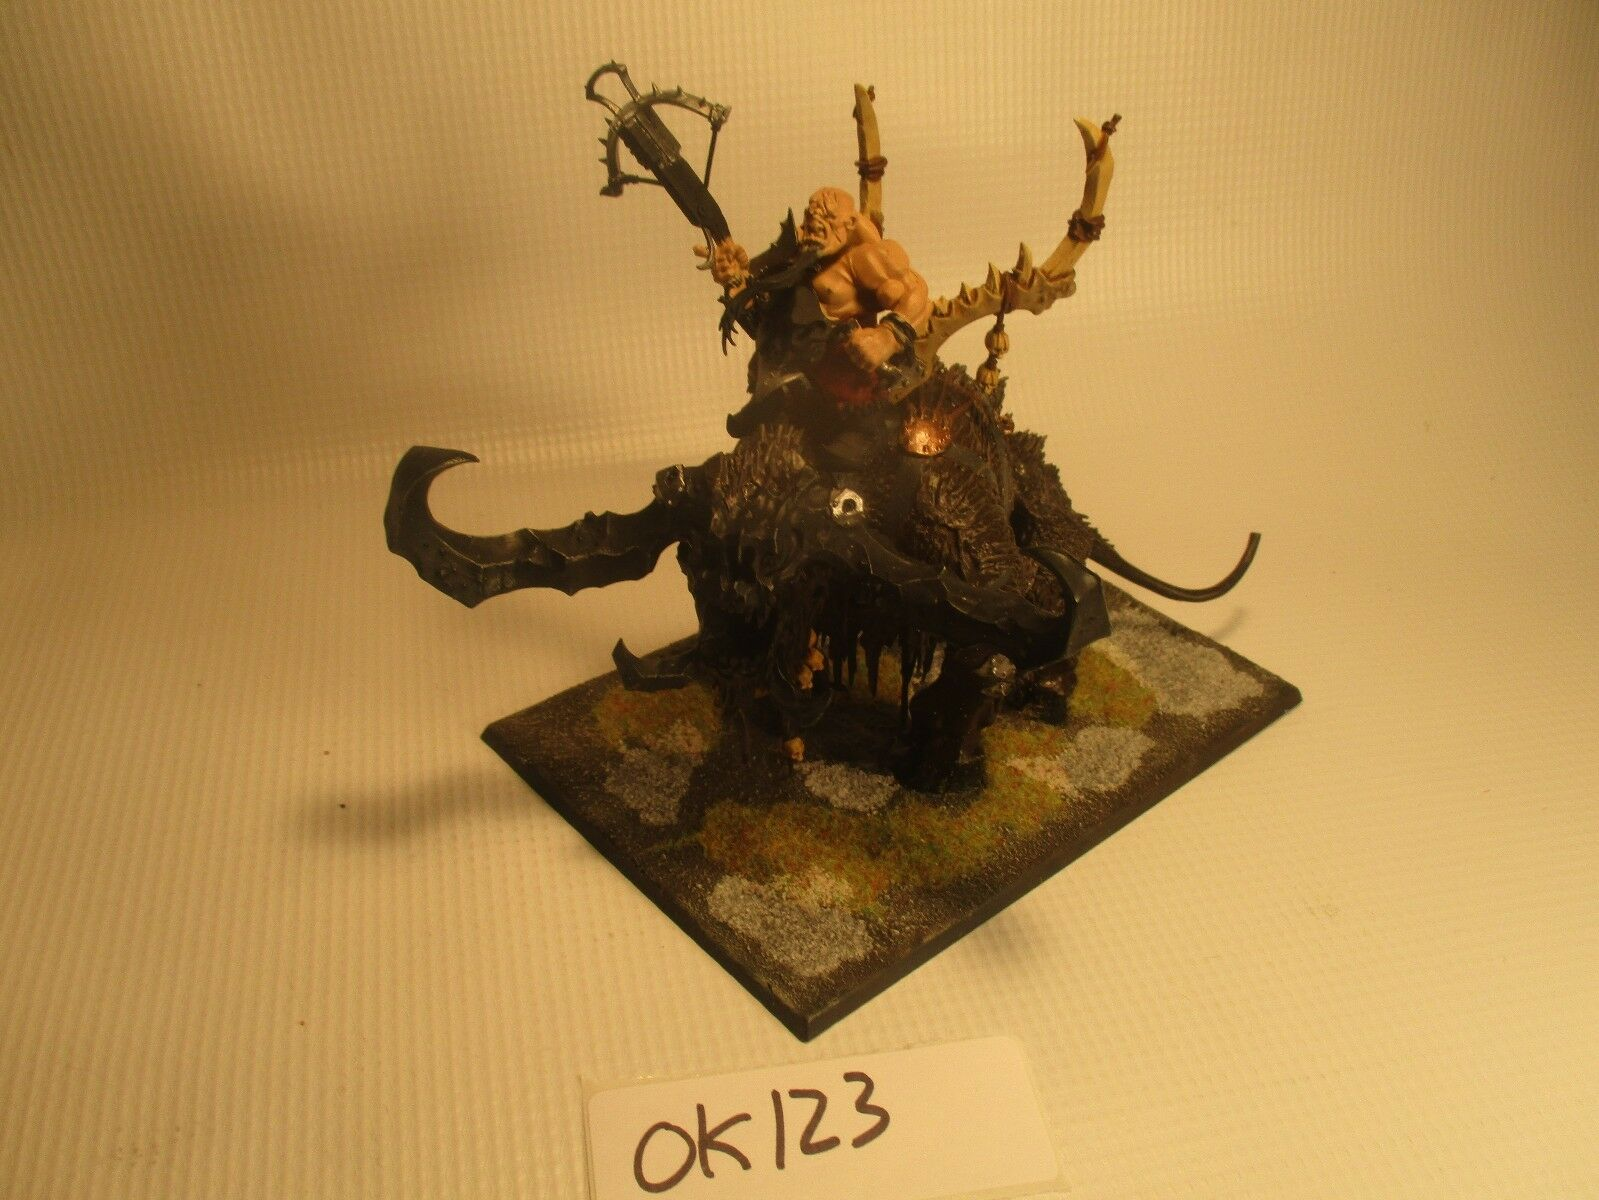 Warhammer Fantasy Age of Sigmar Oger Kingdoms Stonehorn Painted and Based